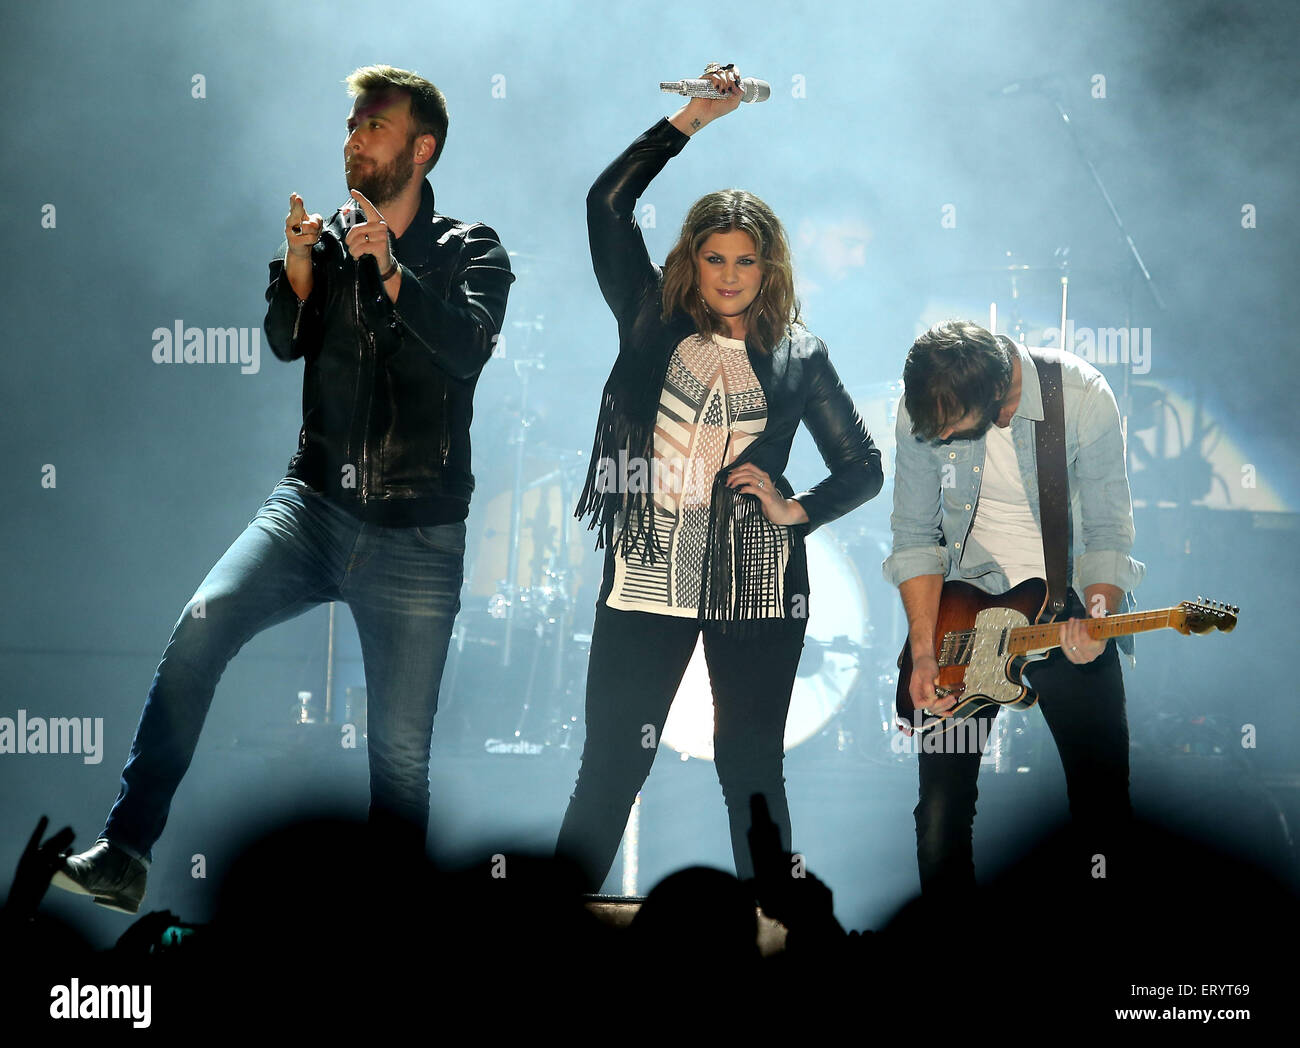 Lady Antebellum, David Nail, and Maddie & Tae Perform at Downtown ...